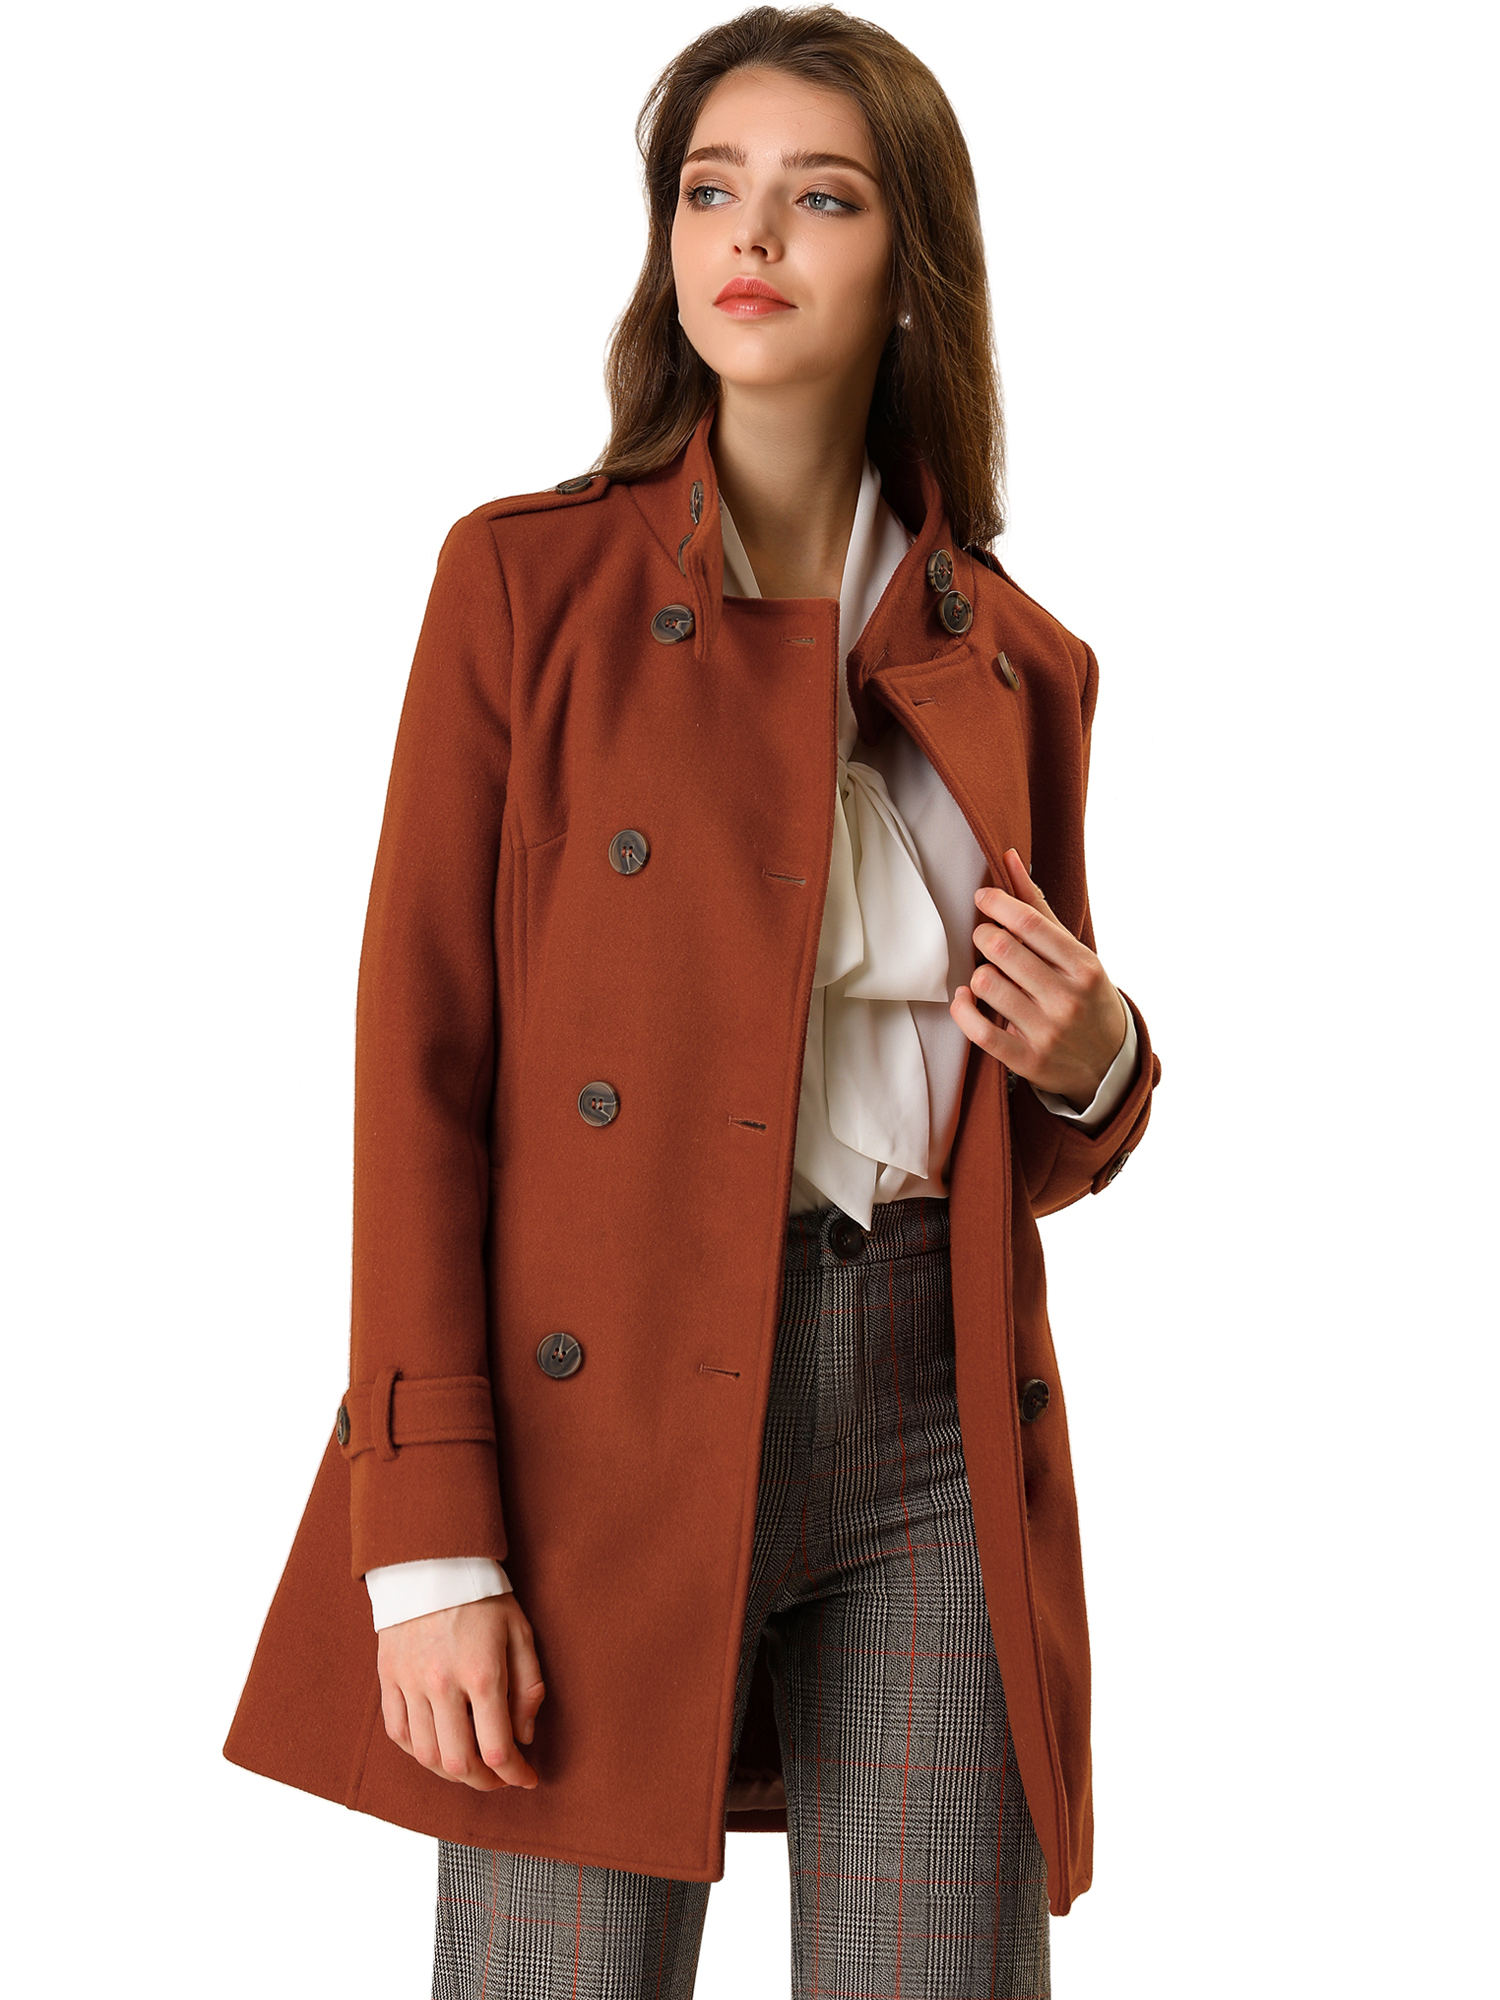 Women's Winter Stand Collar Double Breasted Outwear Trench Coat Brown M